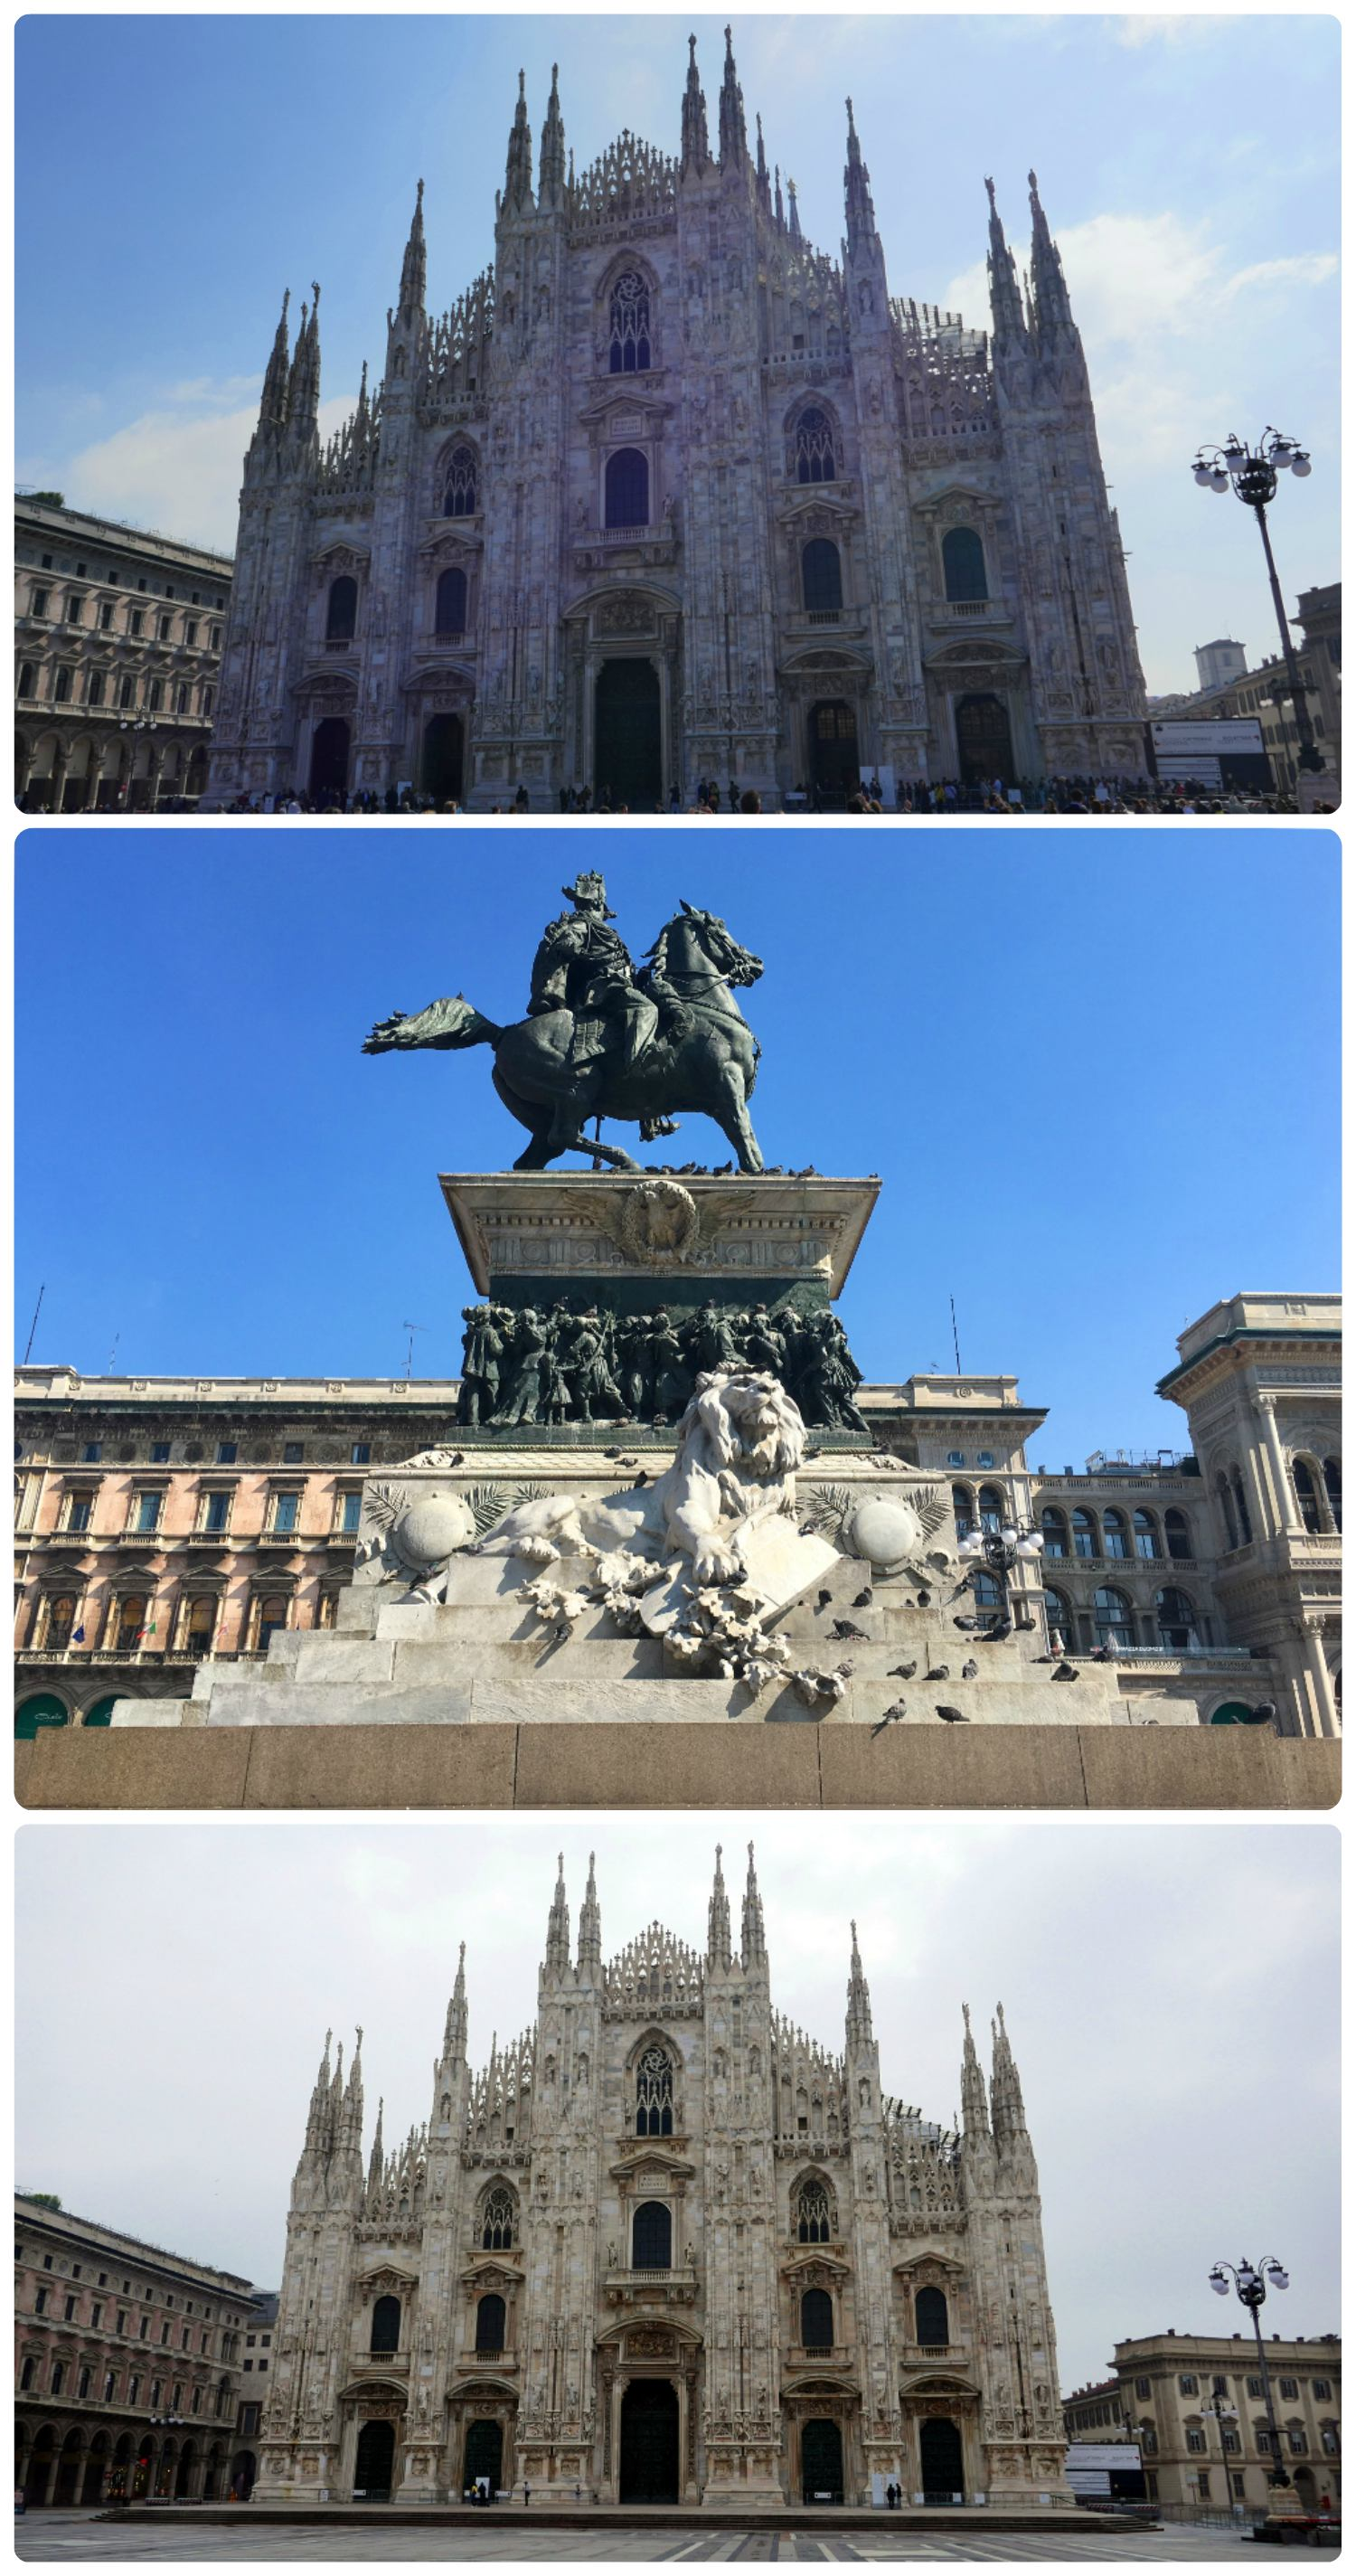 Top to bottom: Our first day at the Duomo when it was sunny but crowded, the Monumento Equestre a Vittorio Emanuele II monument in Piazza del Duomo, our Sunday morning at the Duomo was cloudy but with minimal tourists.